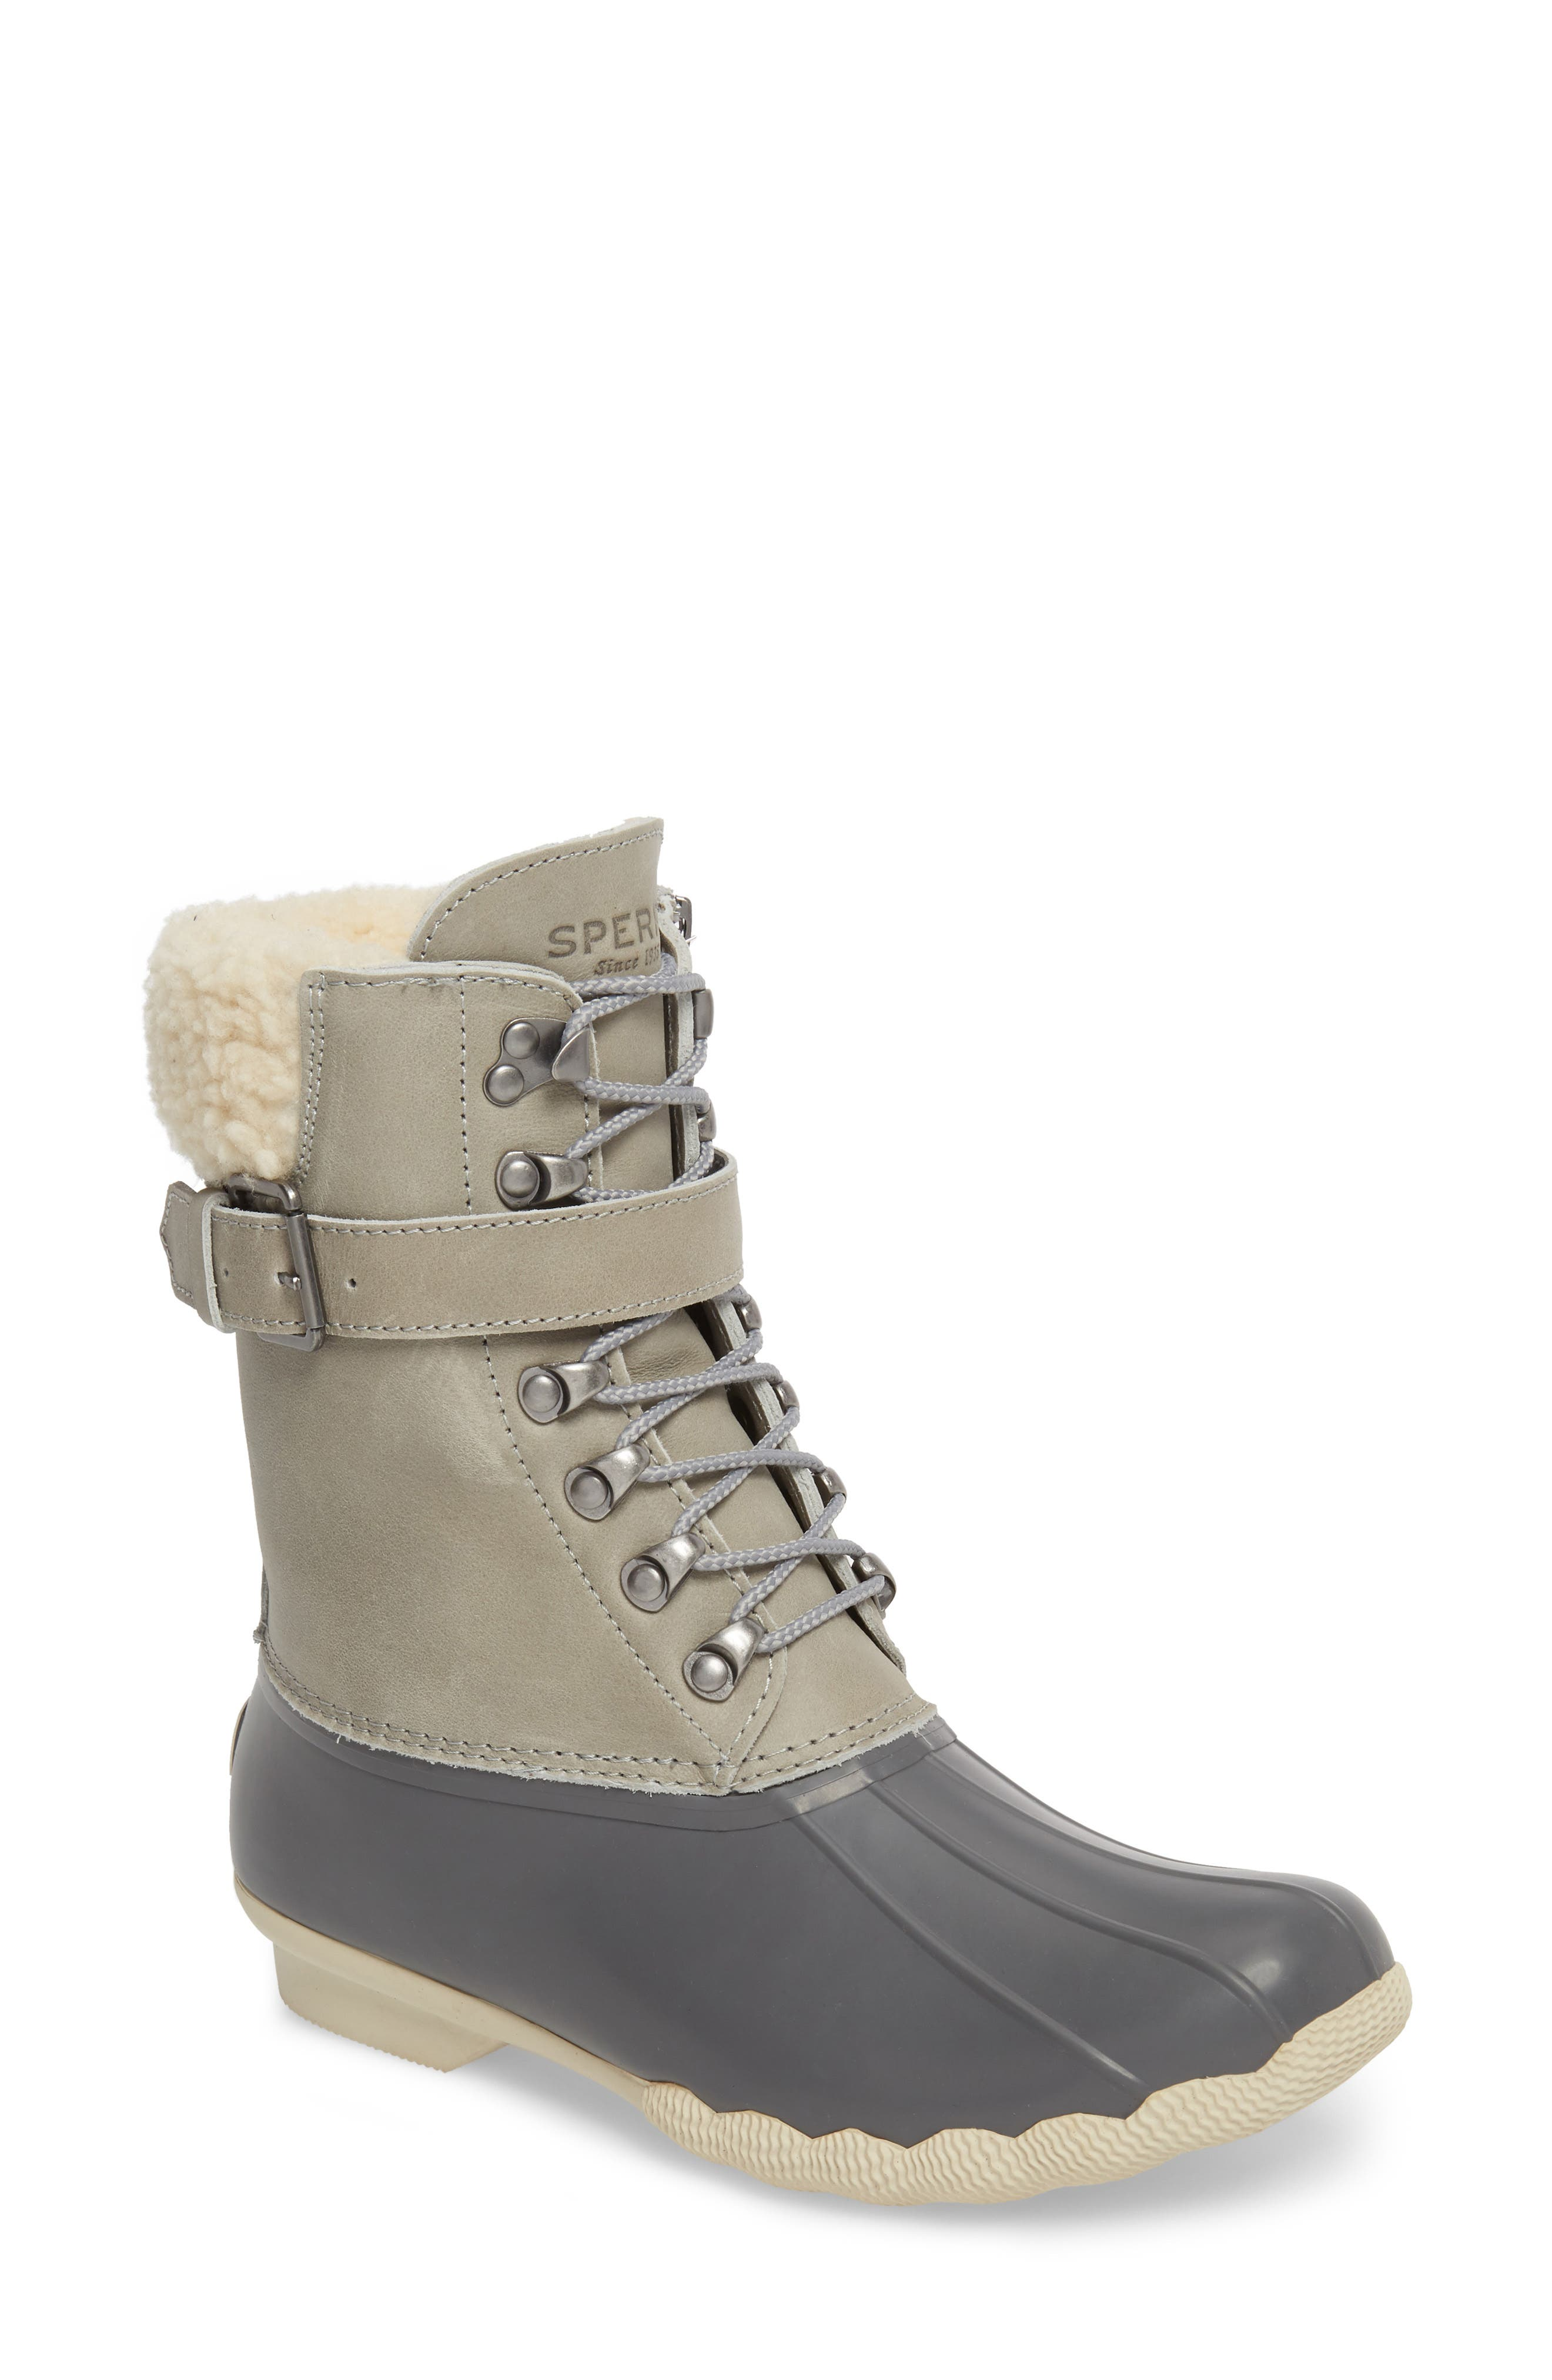 Shearwater Water-Resistant Genuine Shearling Lined Boot,                             Main thumbnail 3, color,